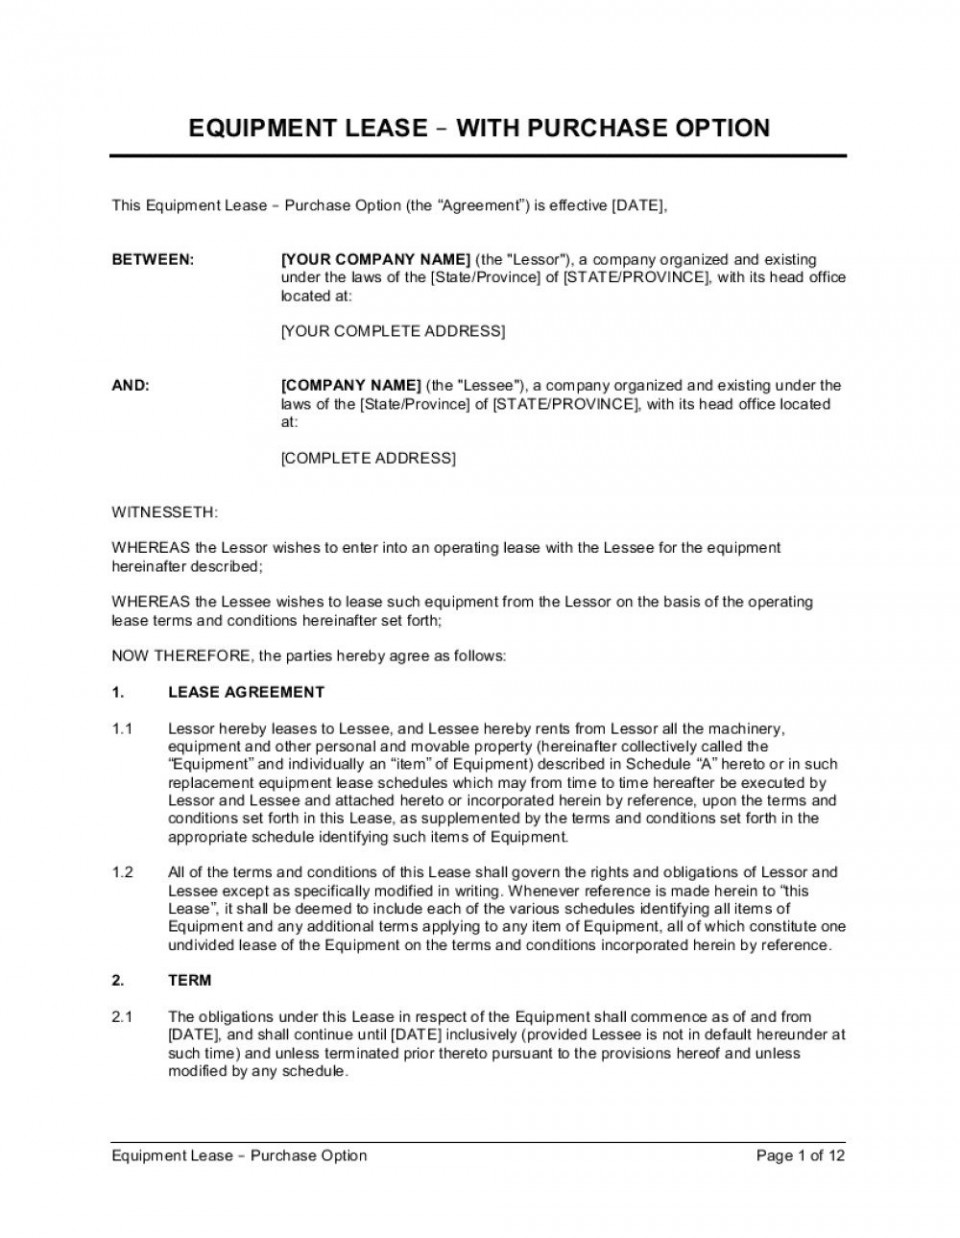 004 Magnificent Rent To Own Agreement Template High Resolution  Contract Florida South Africa960